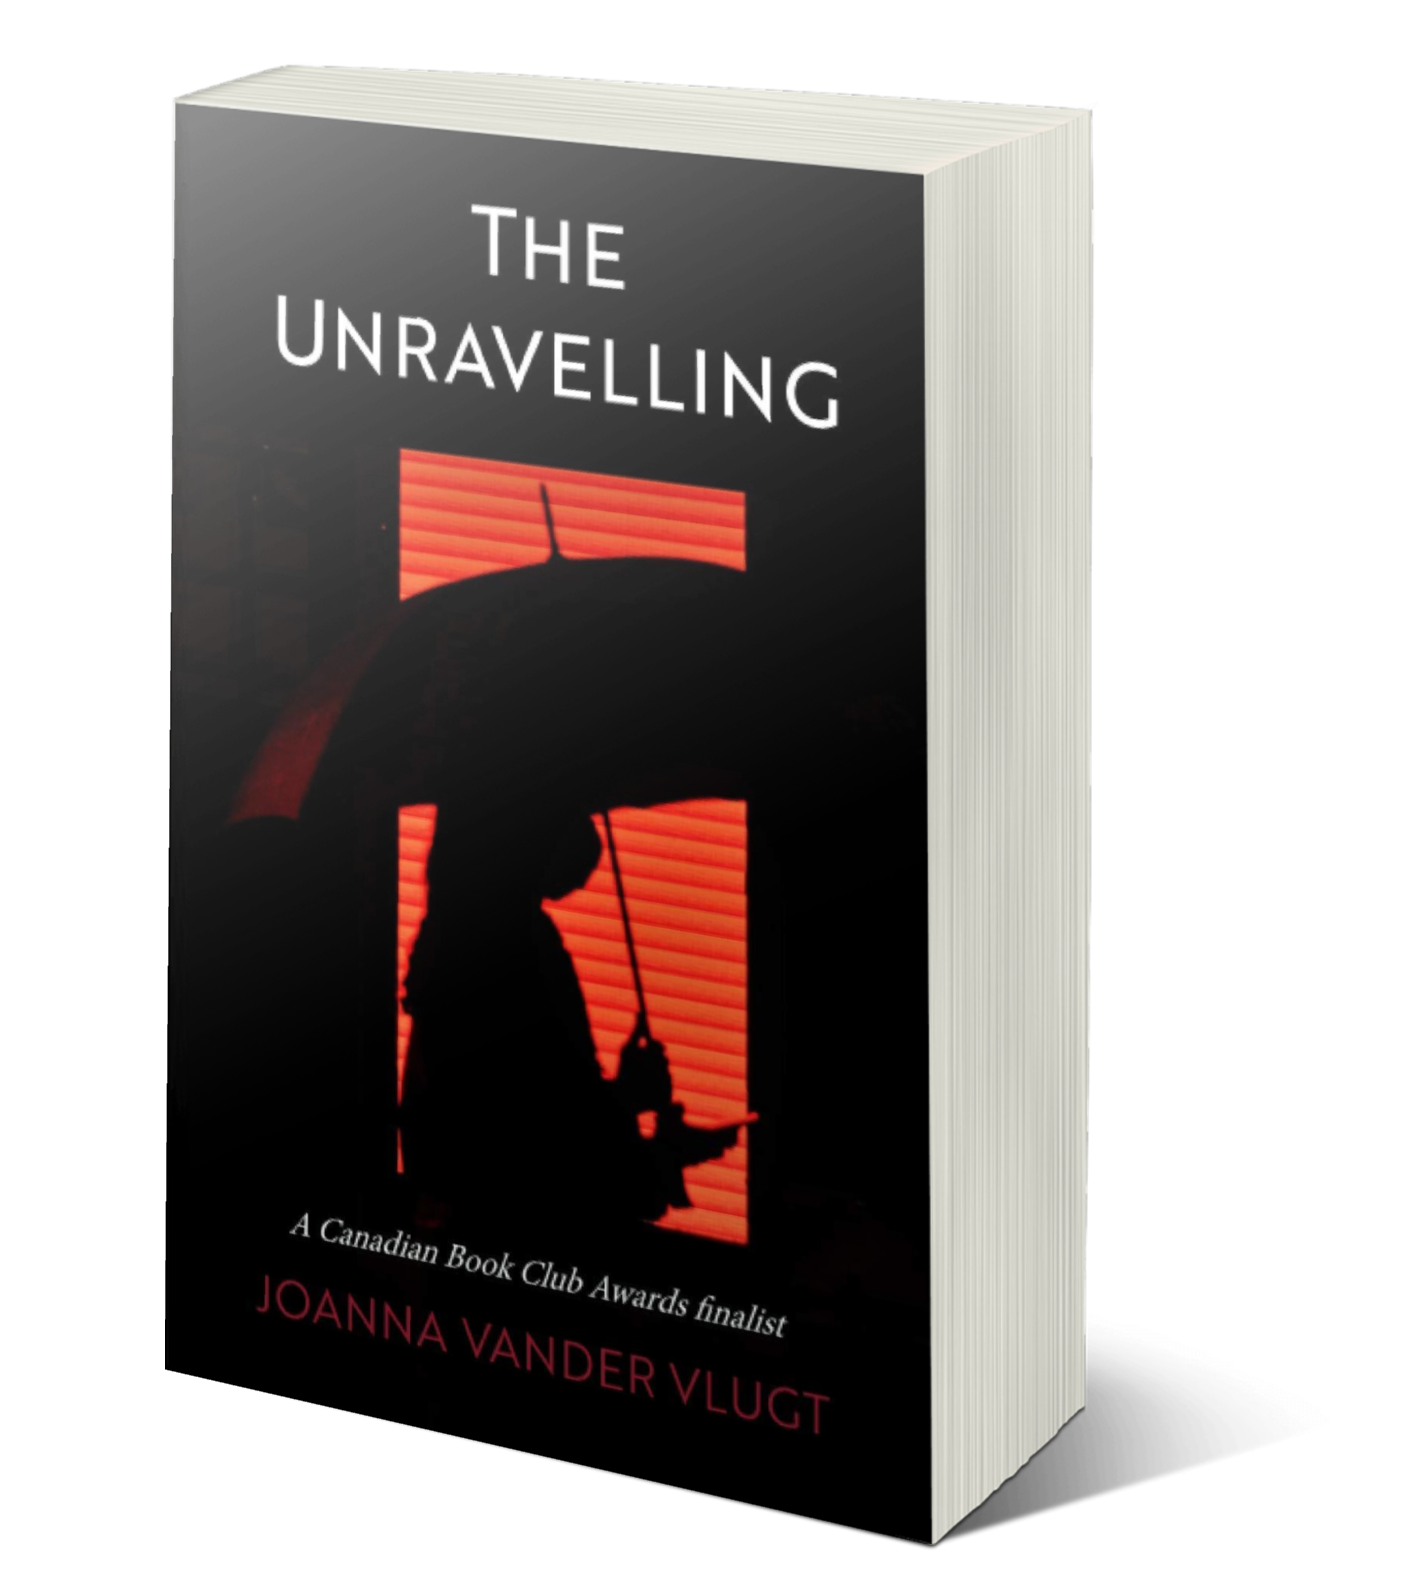 The Unravelling